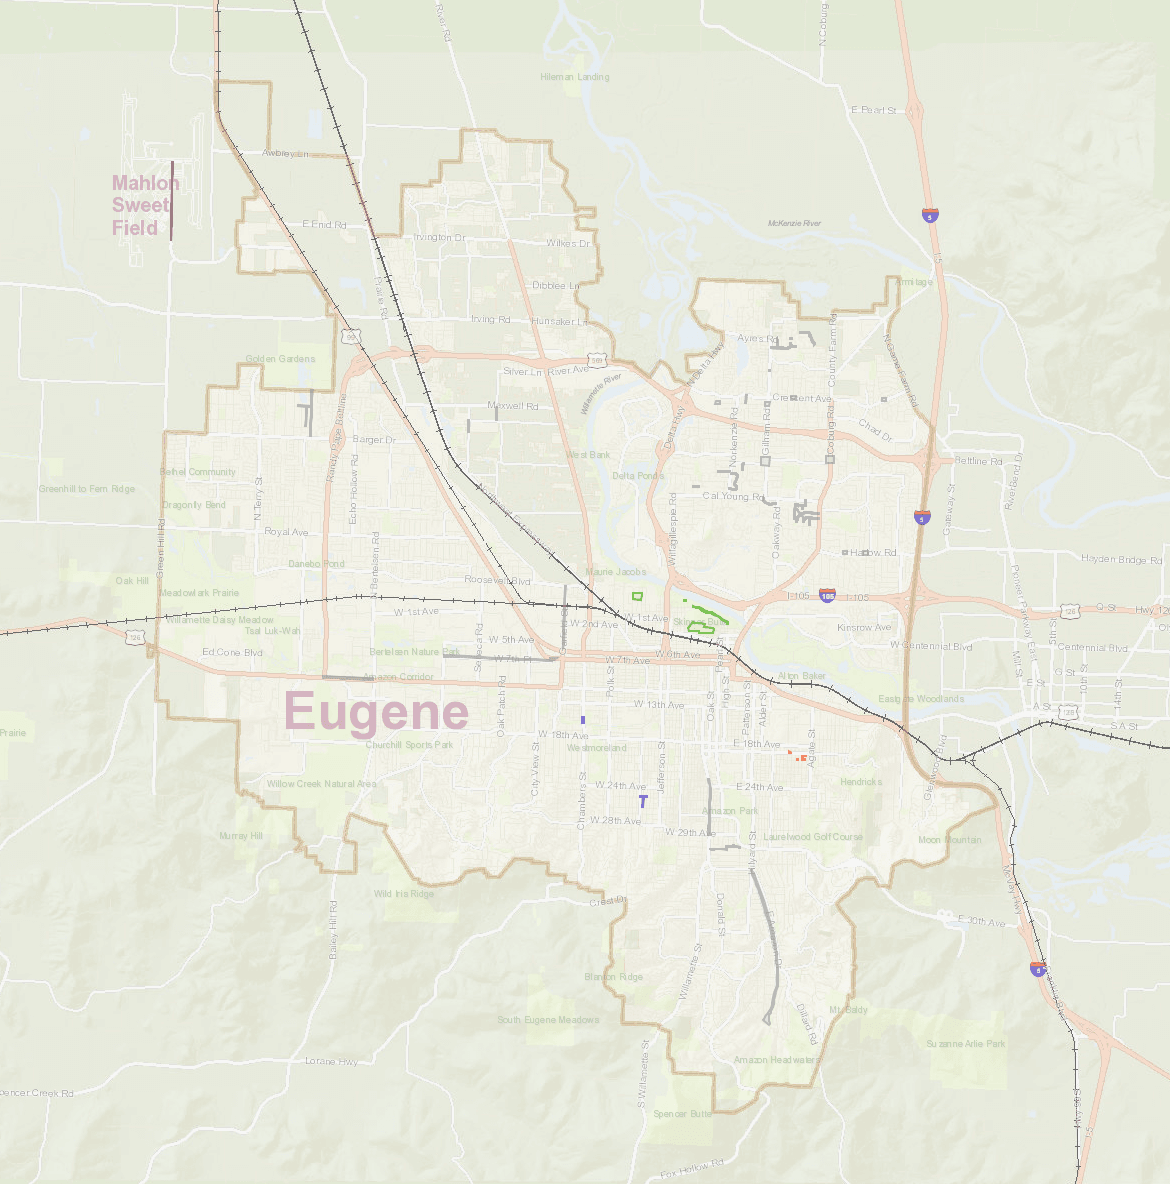 Map of Eugene with projects shown with different projects in various colors